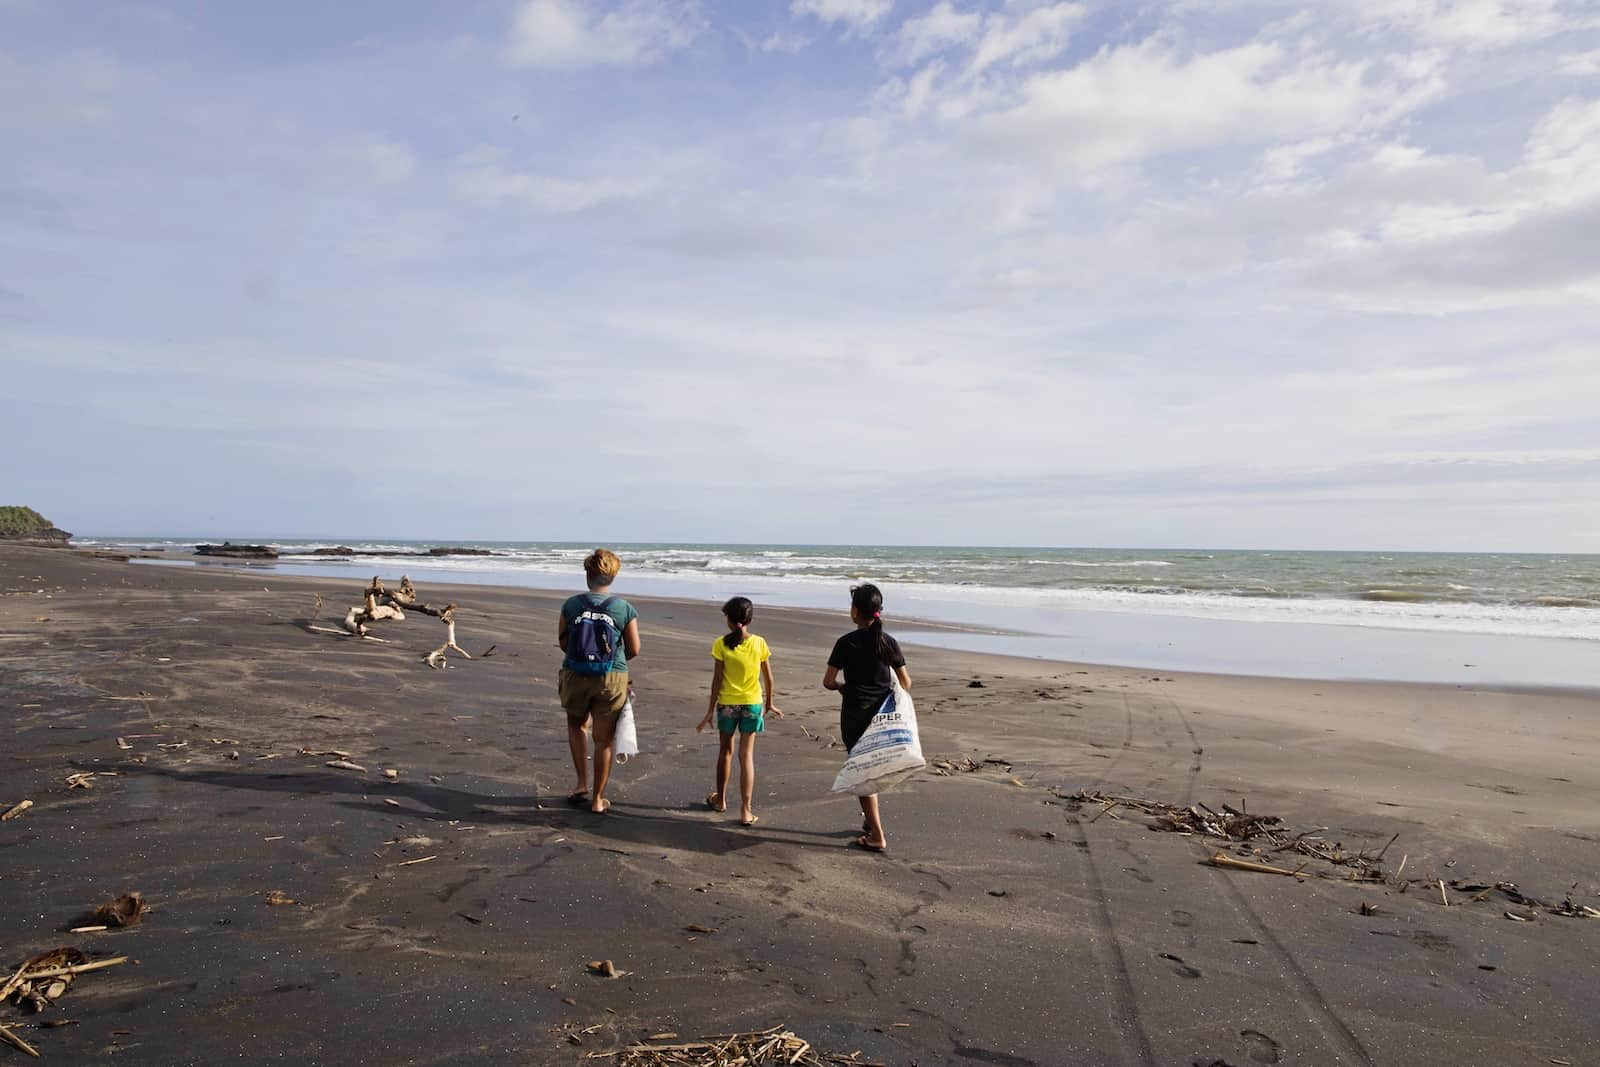 A woman walks down a wide beach with two children, holding bags in which they gather trash.